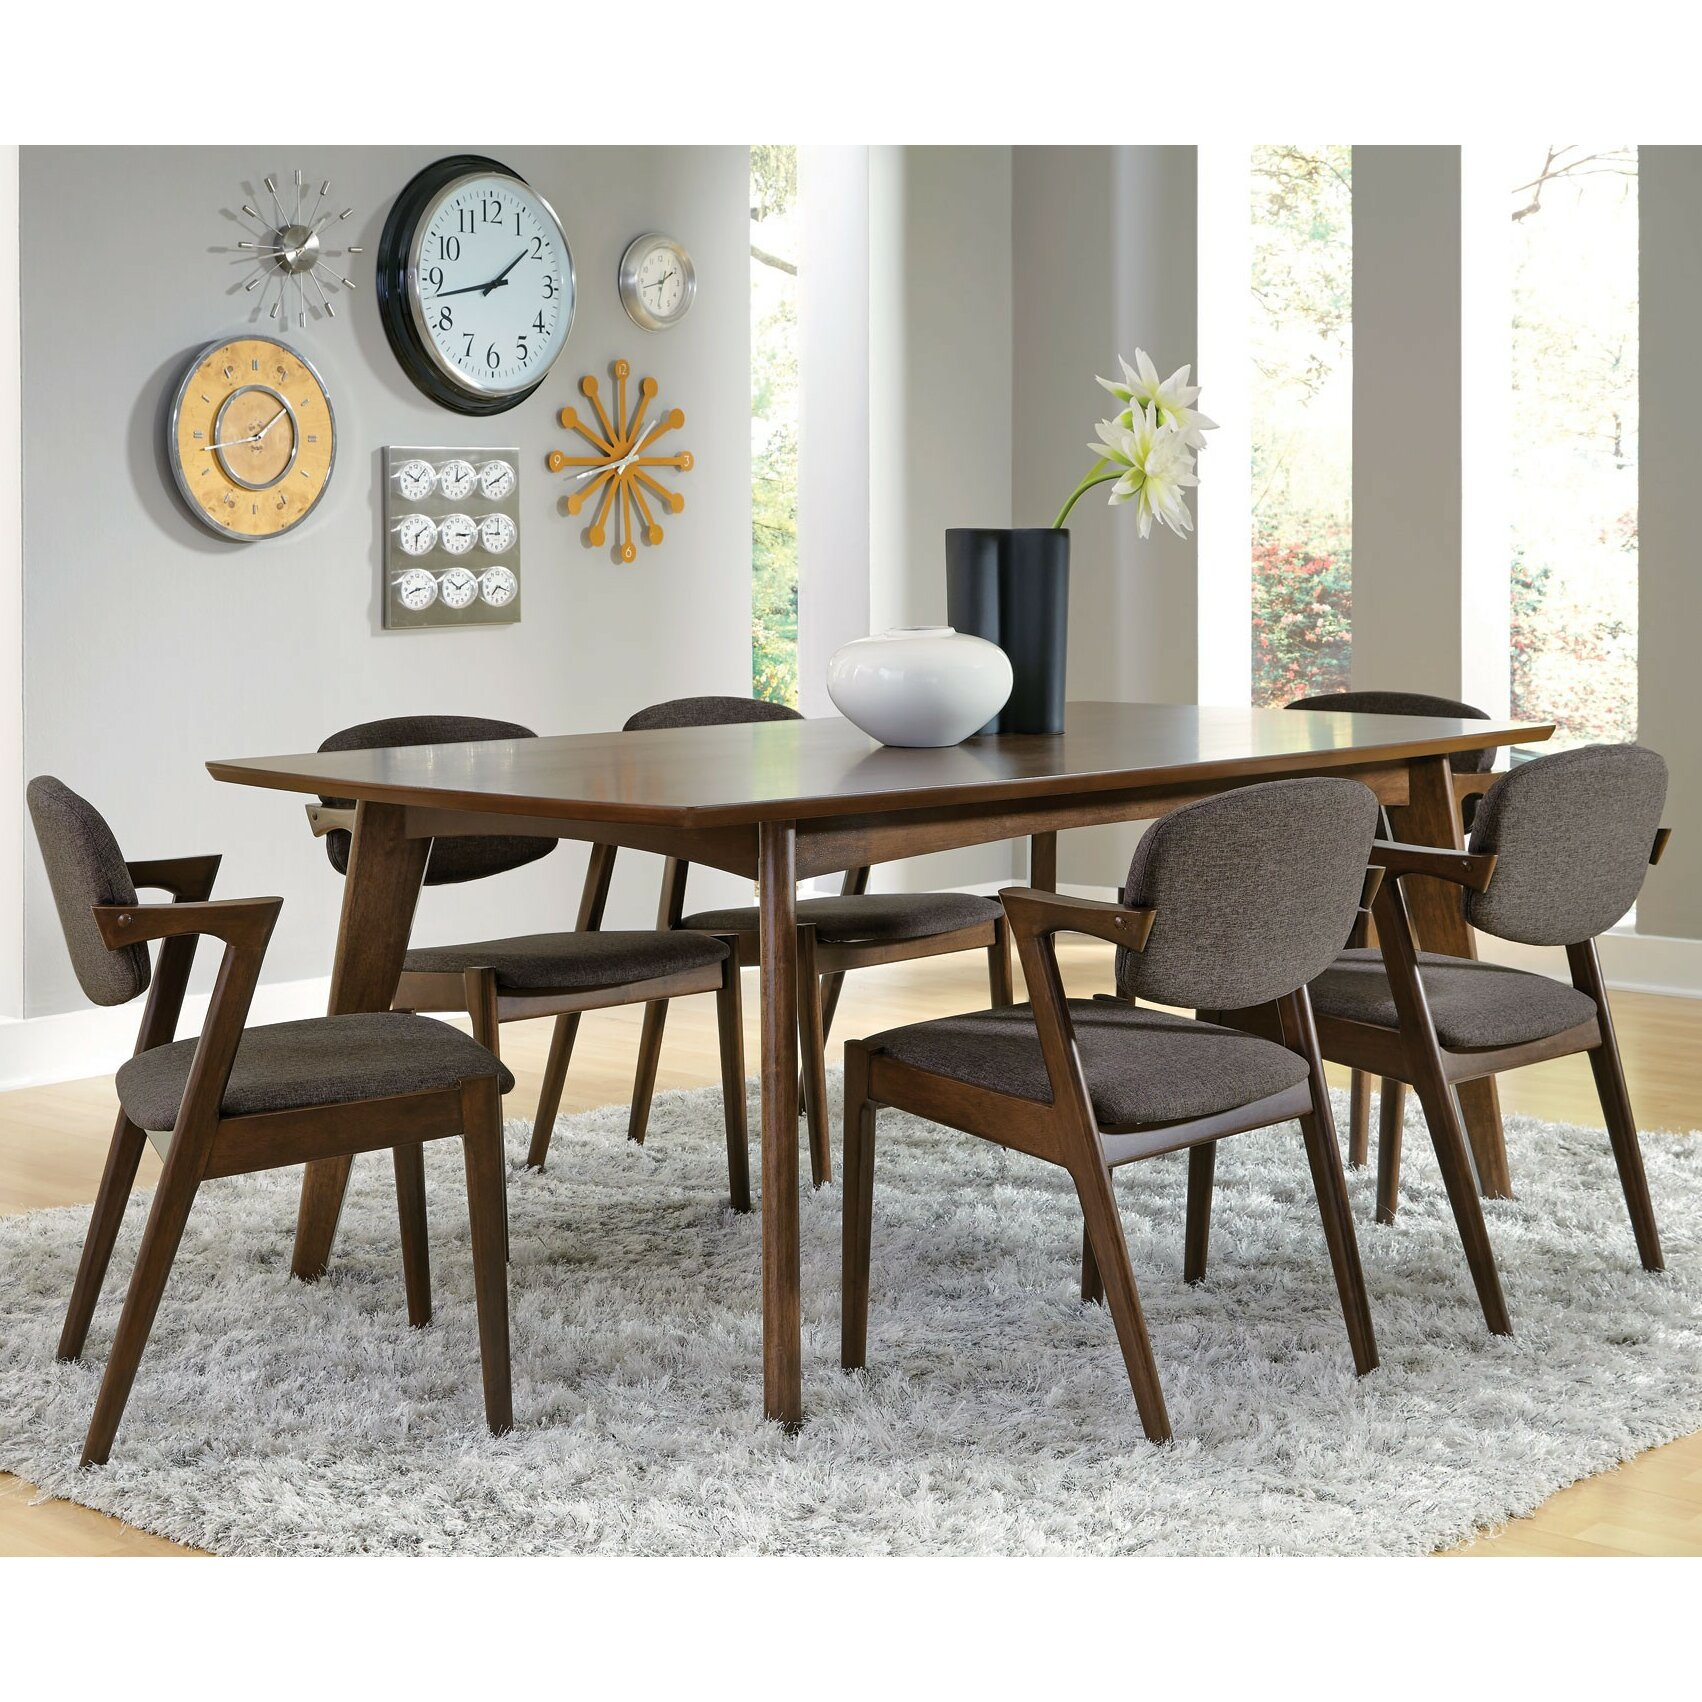 7 Piece Dining Set ~ Infini furnishings frederik piece dining set reviews